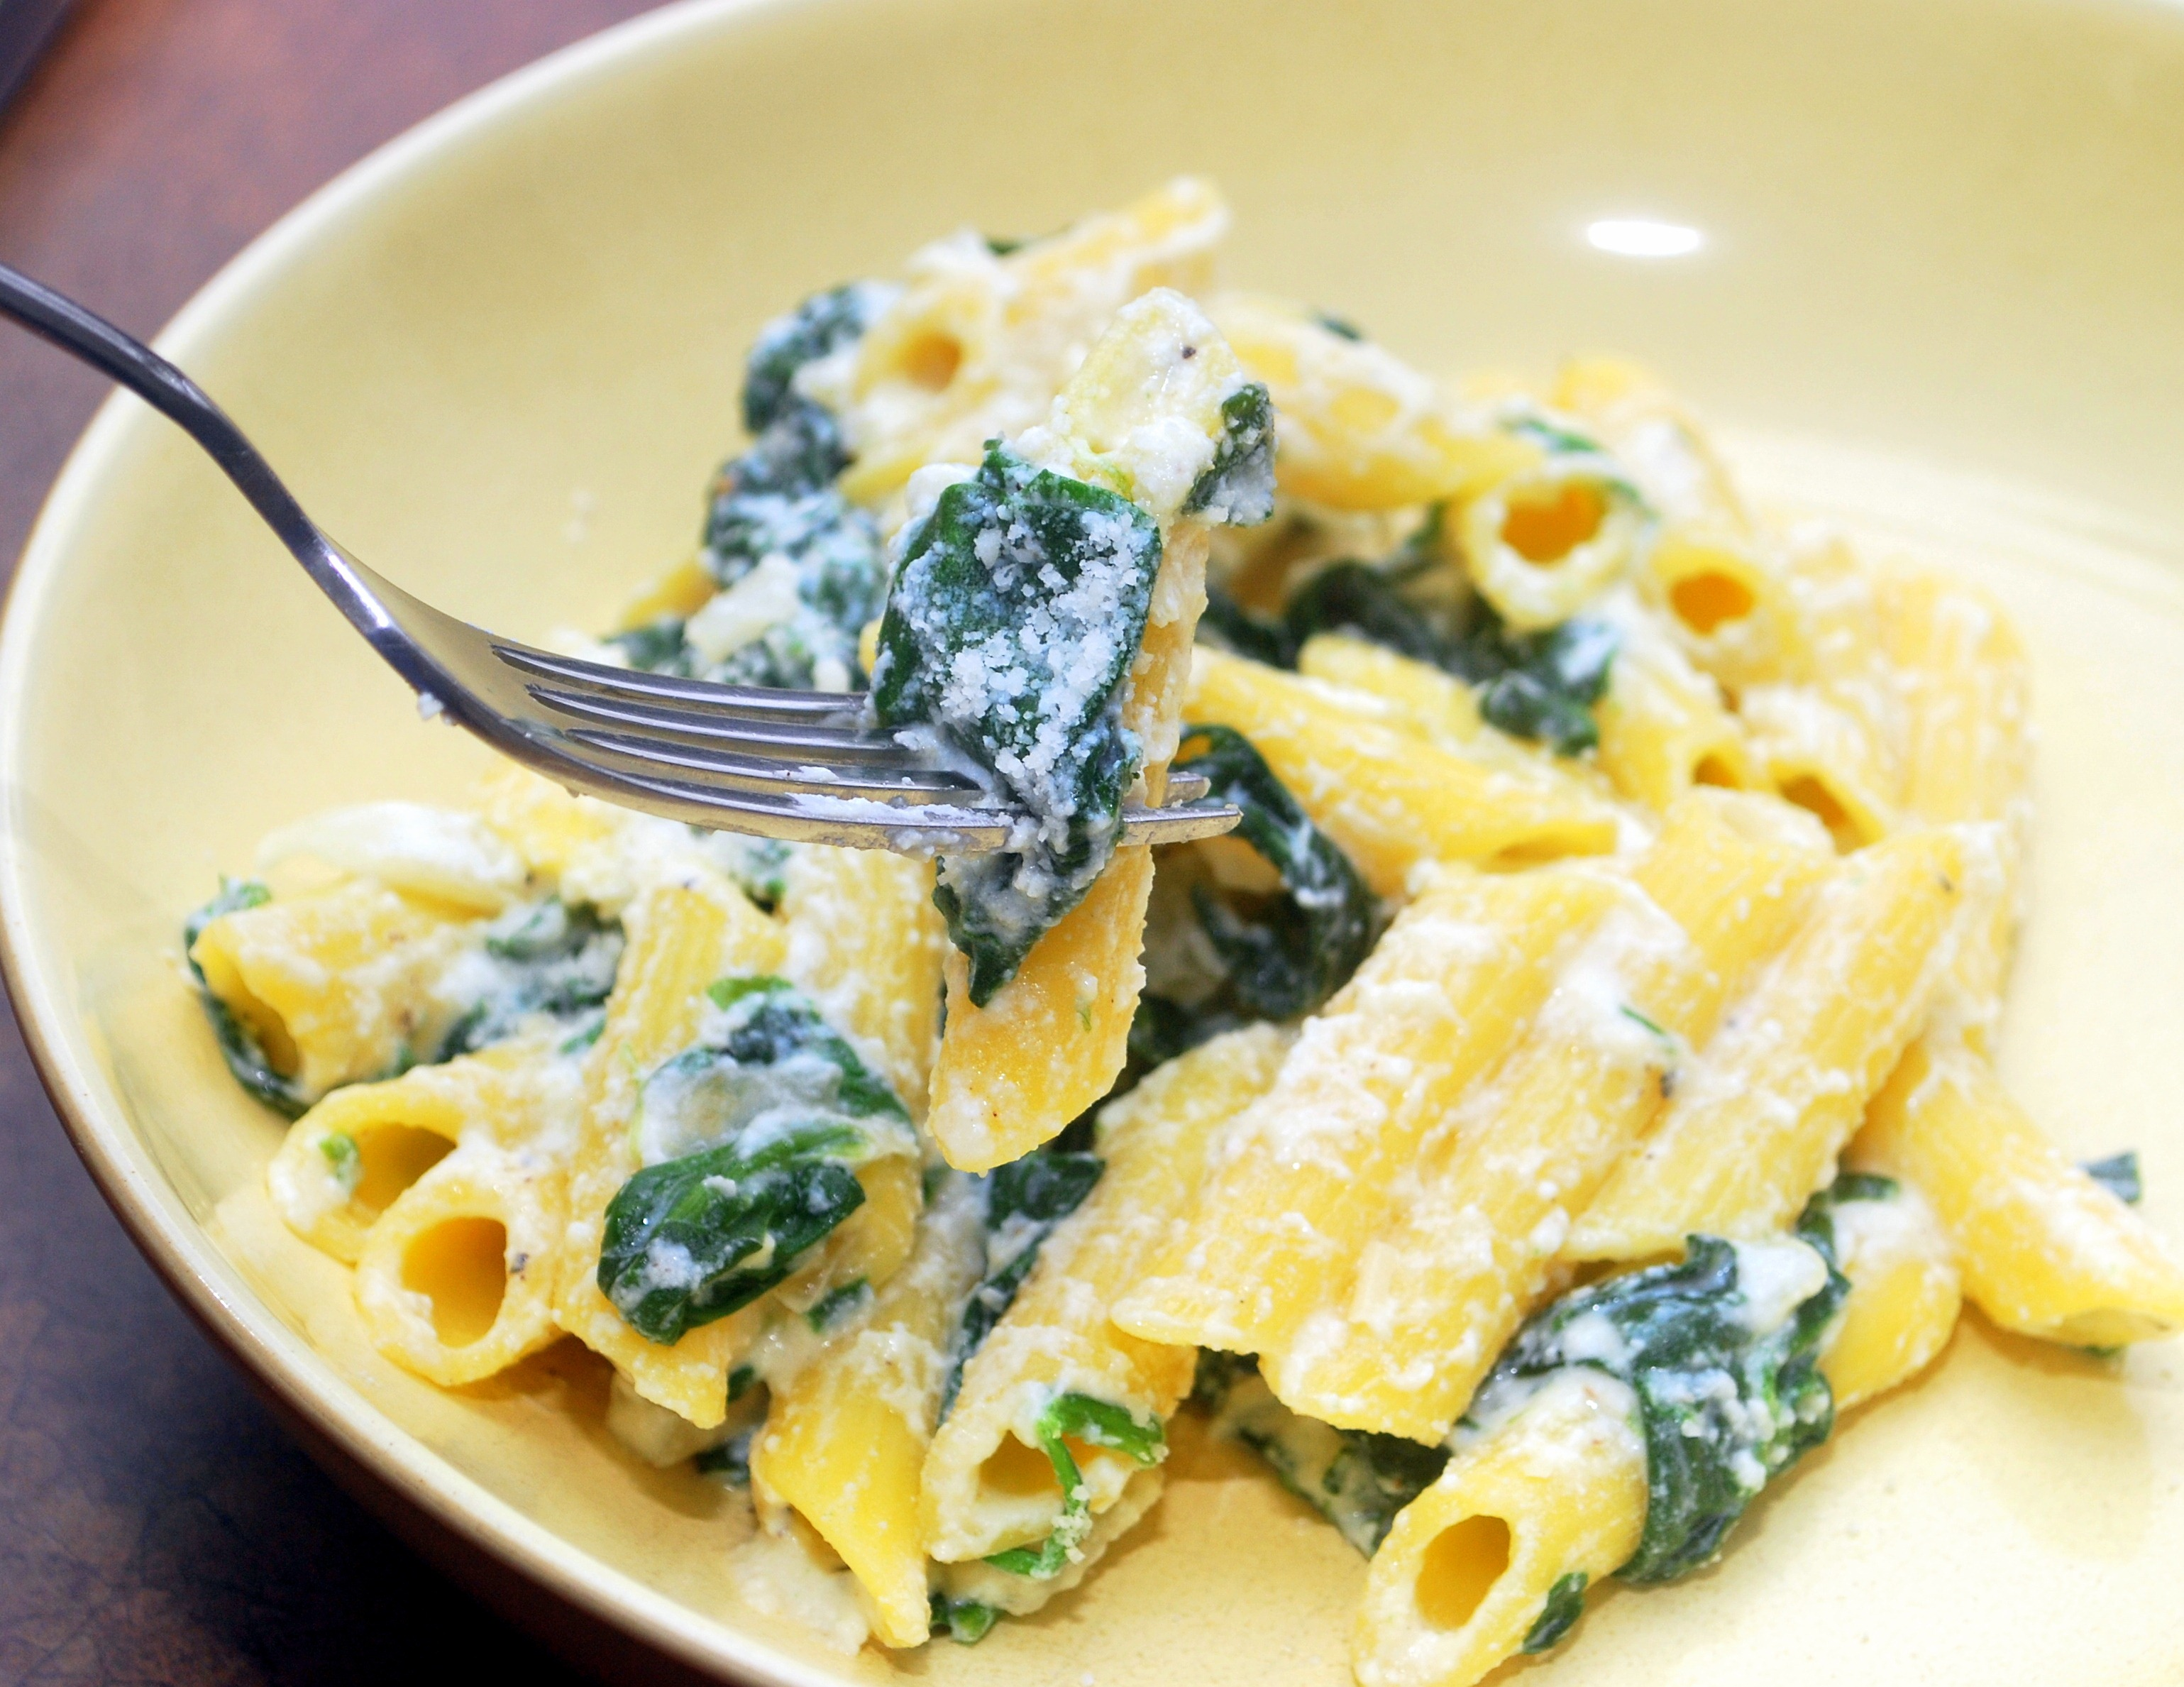 Penne With A Spinach-Ricotta Sauce